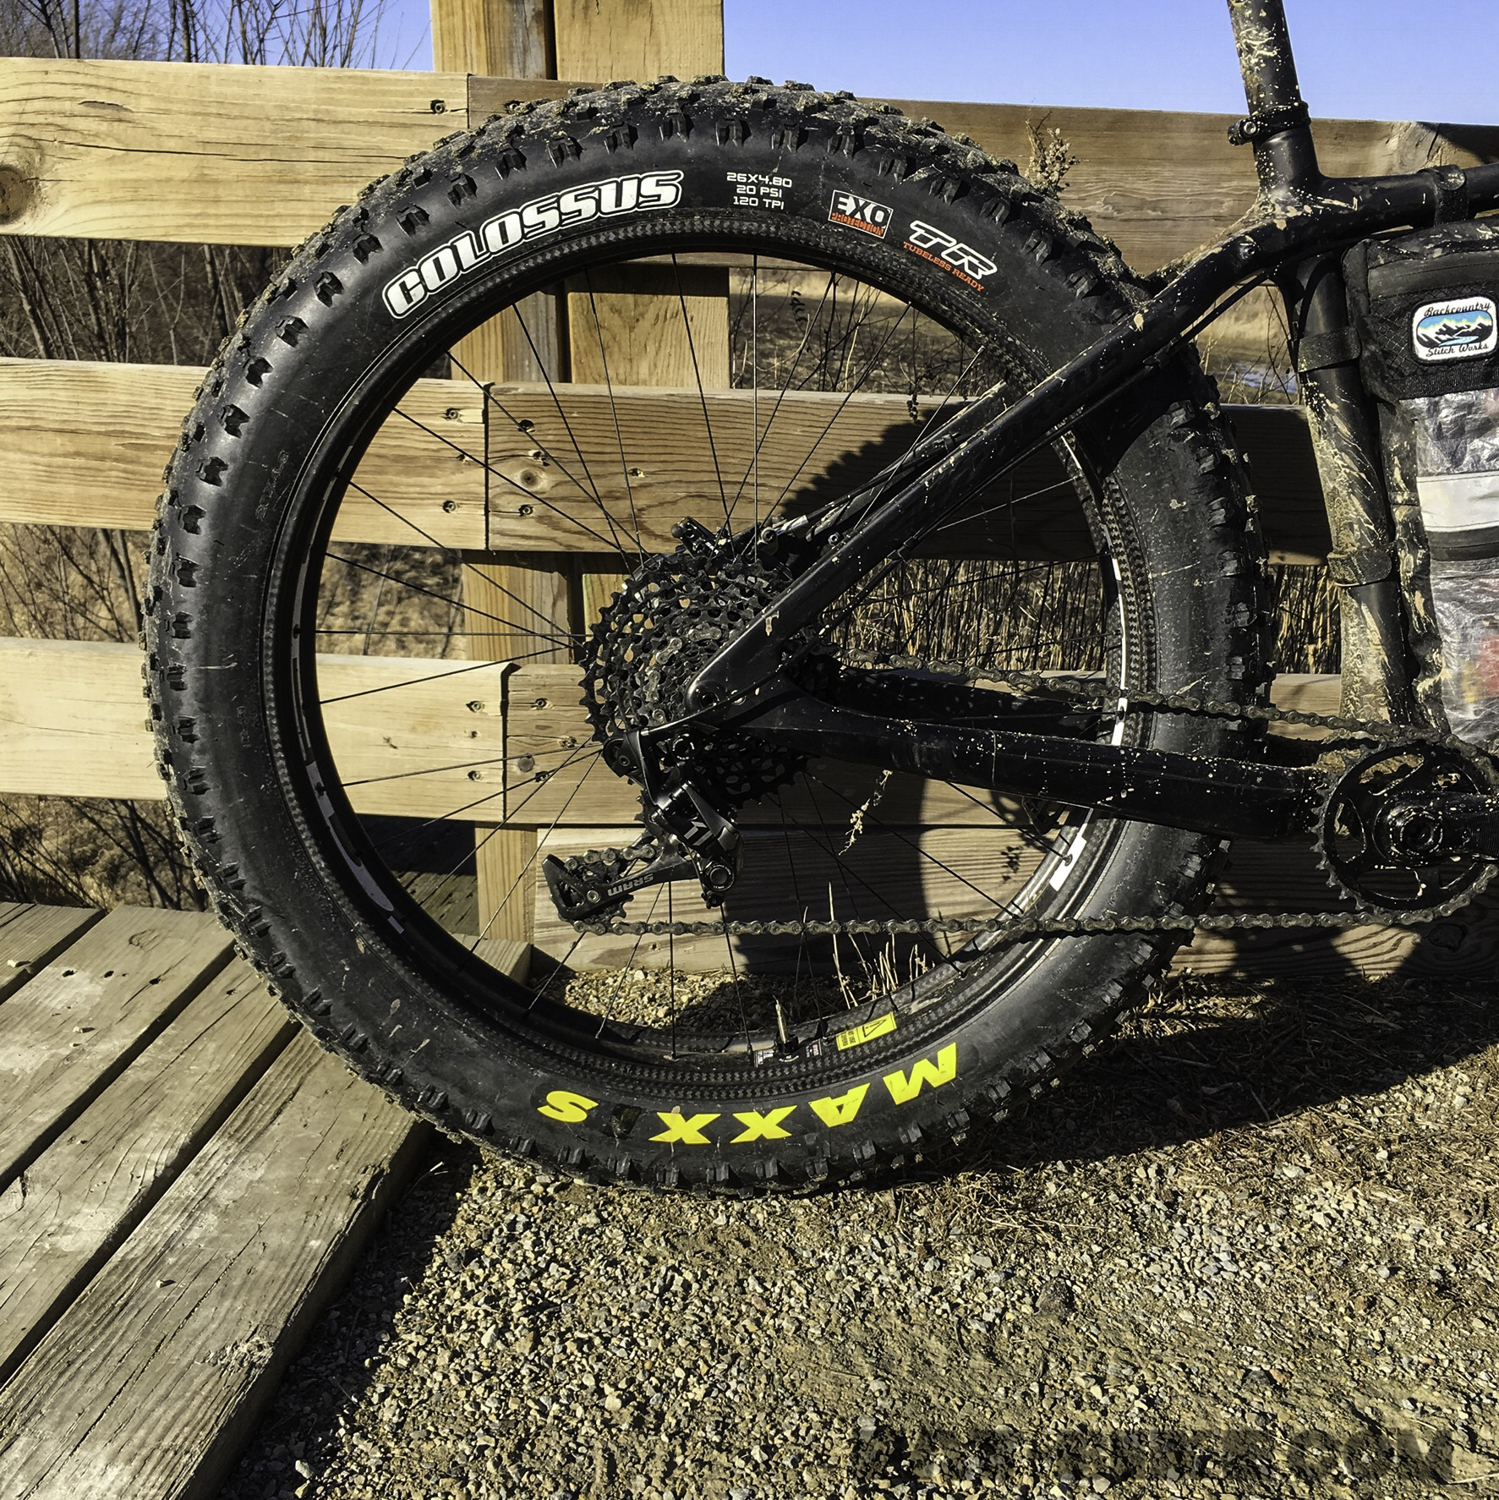 Maxxis Colossus 26 X 4 8 Snow Tire Review Fat Bike Com